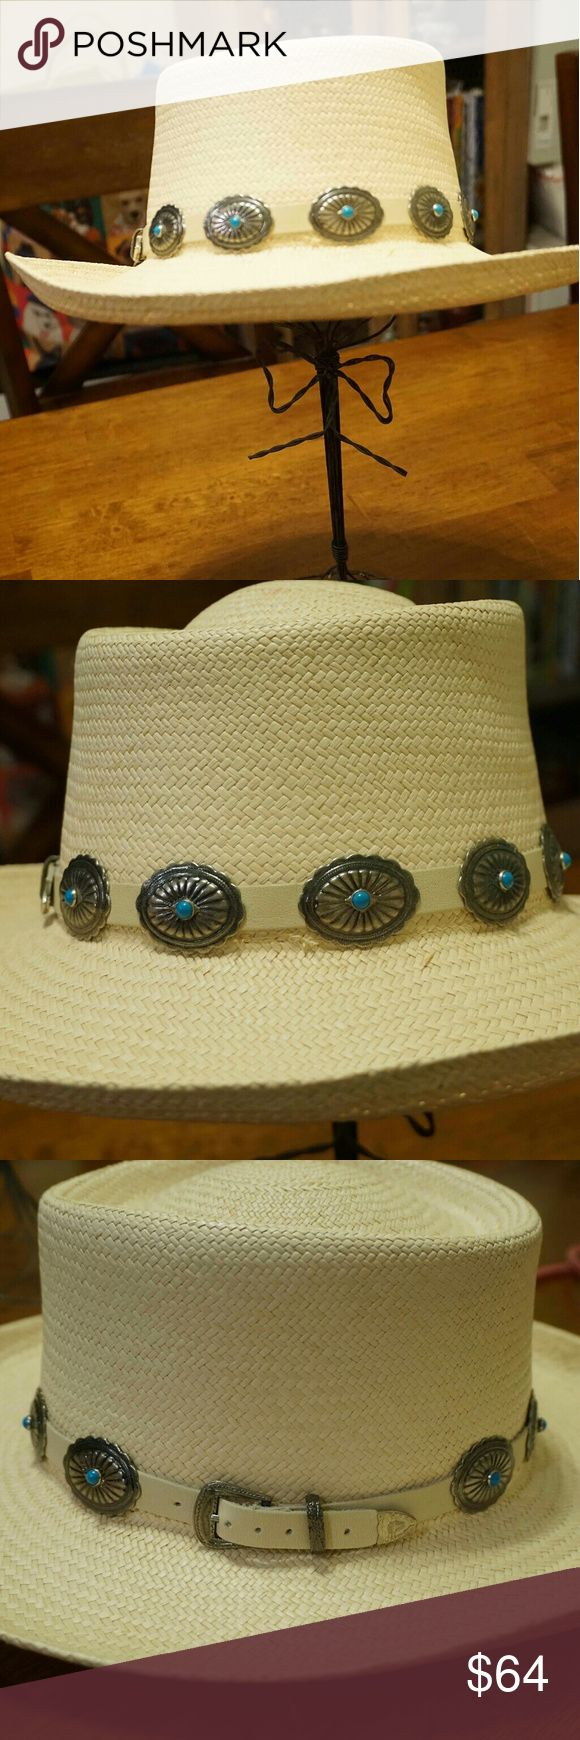 Southwestern bohemian turquoise cabachon straw hat A GORGEOUS vintage boho hat for the summertime. It's a nice light straw material with turquoise canachons adorning it. I especially dig the belt strap on one side. Accessories Hats